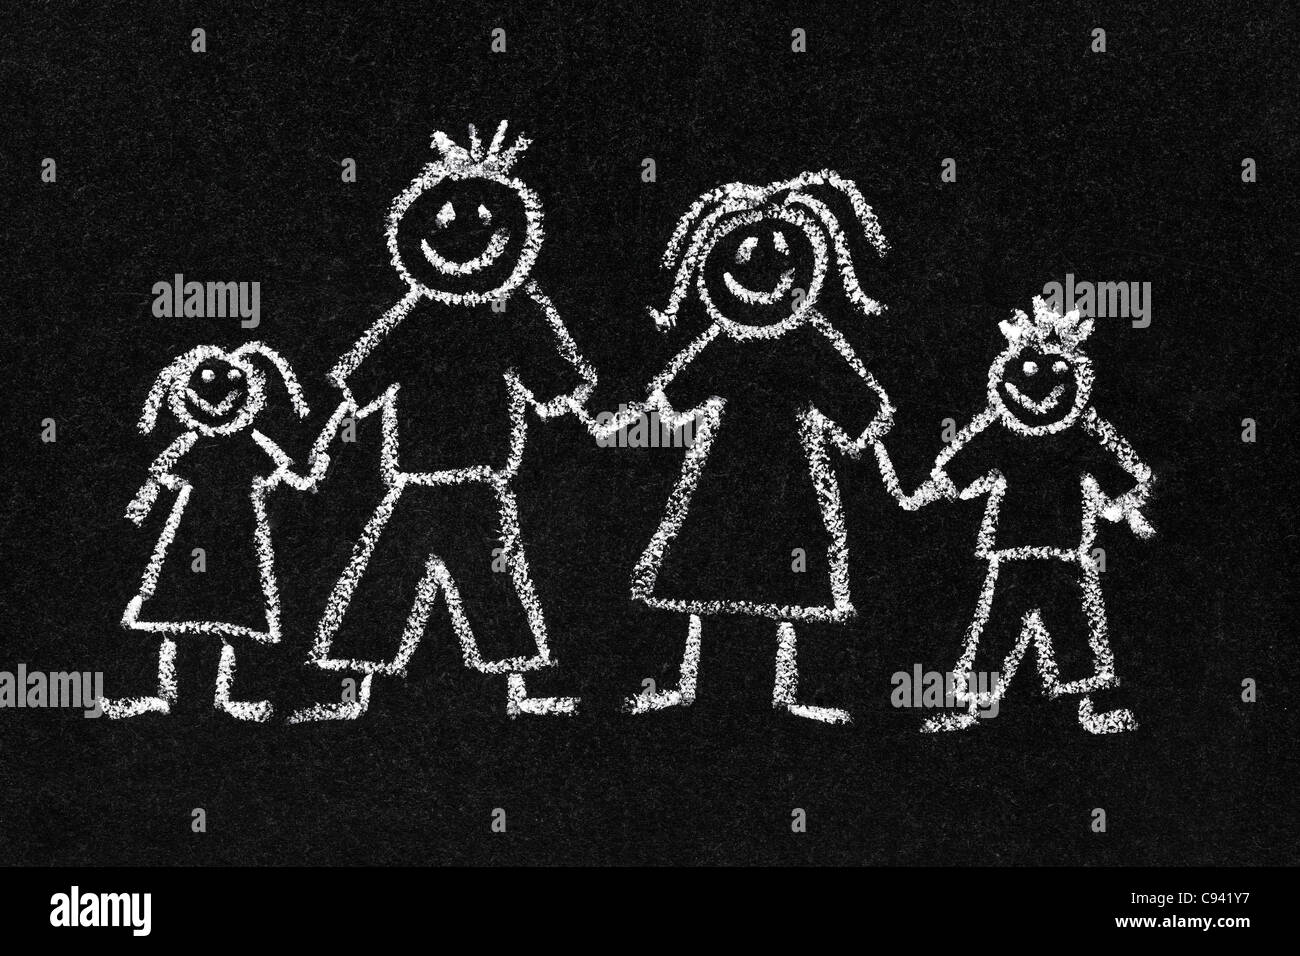 Chalk drawing of a family - Stock Image